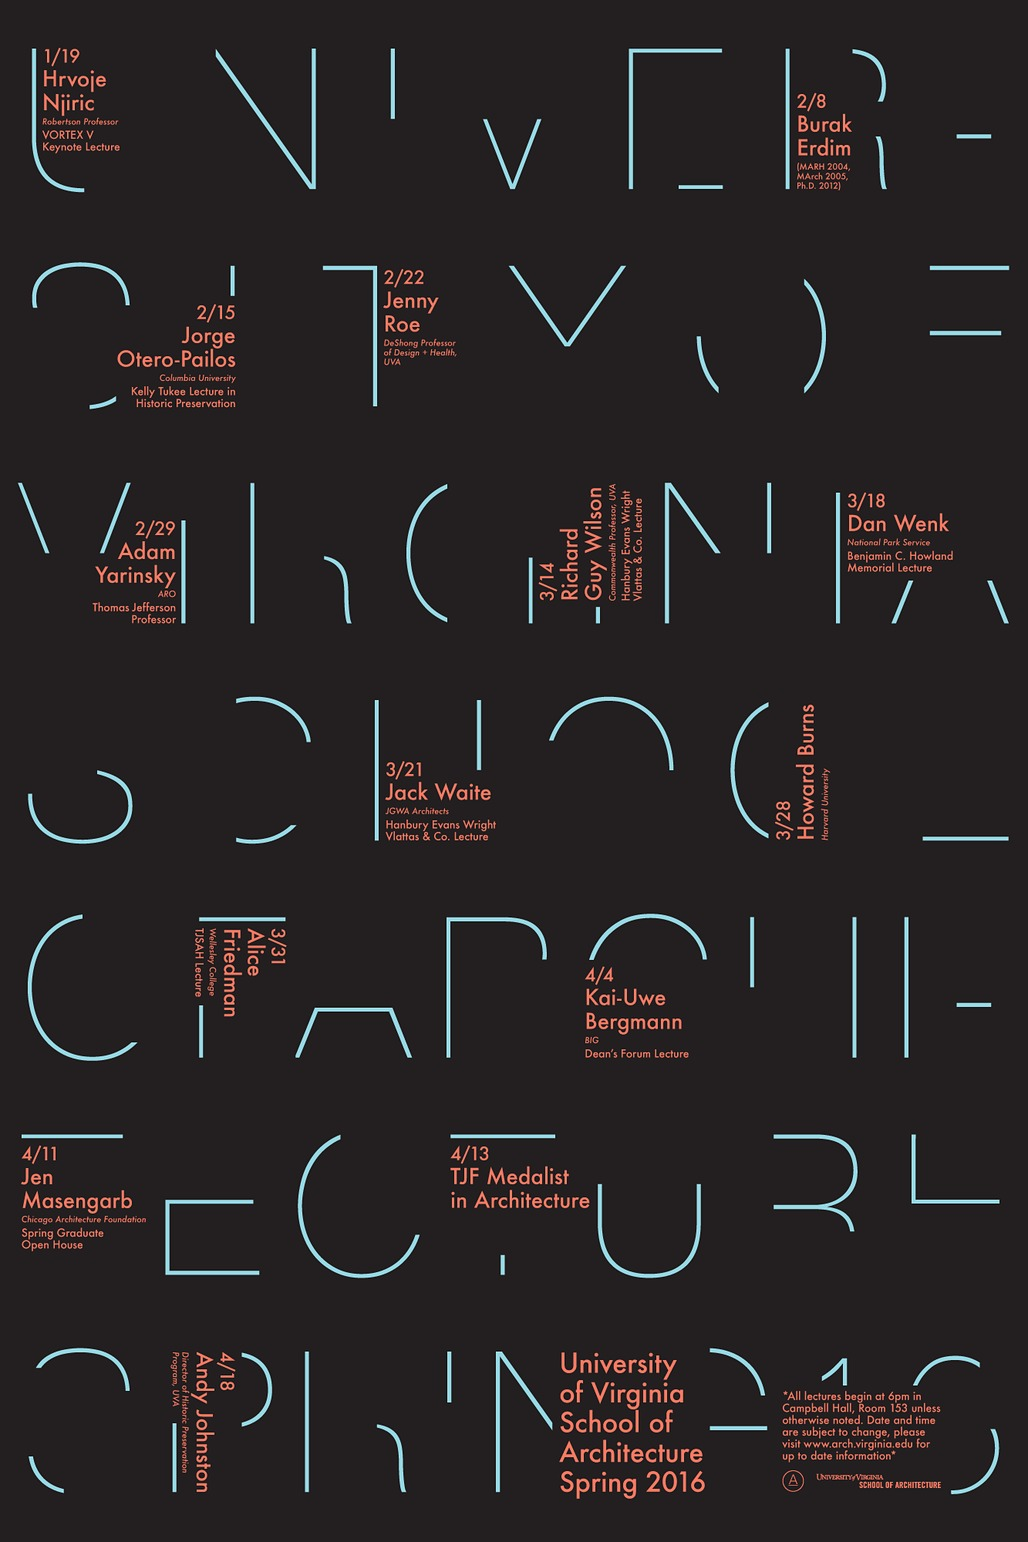 Poster courtesy of the University of Virginia, School of Architecture.